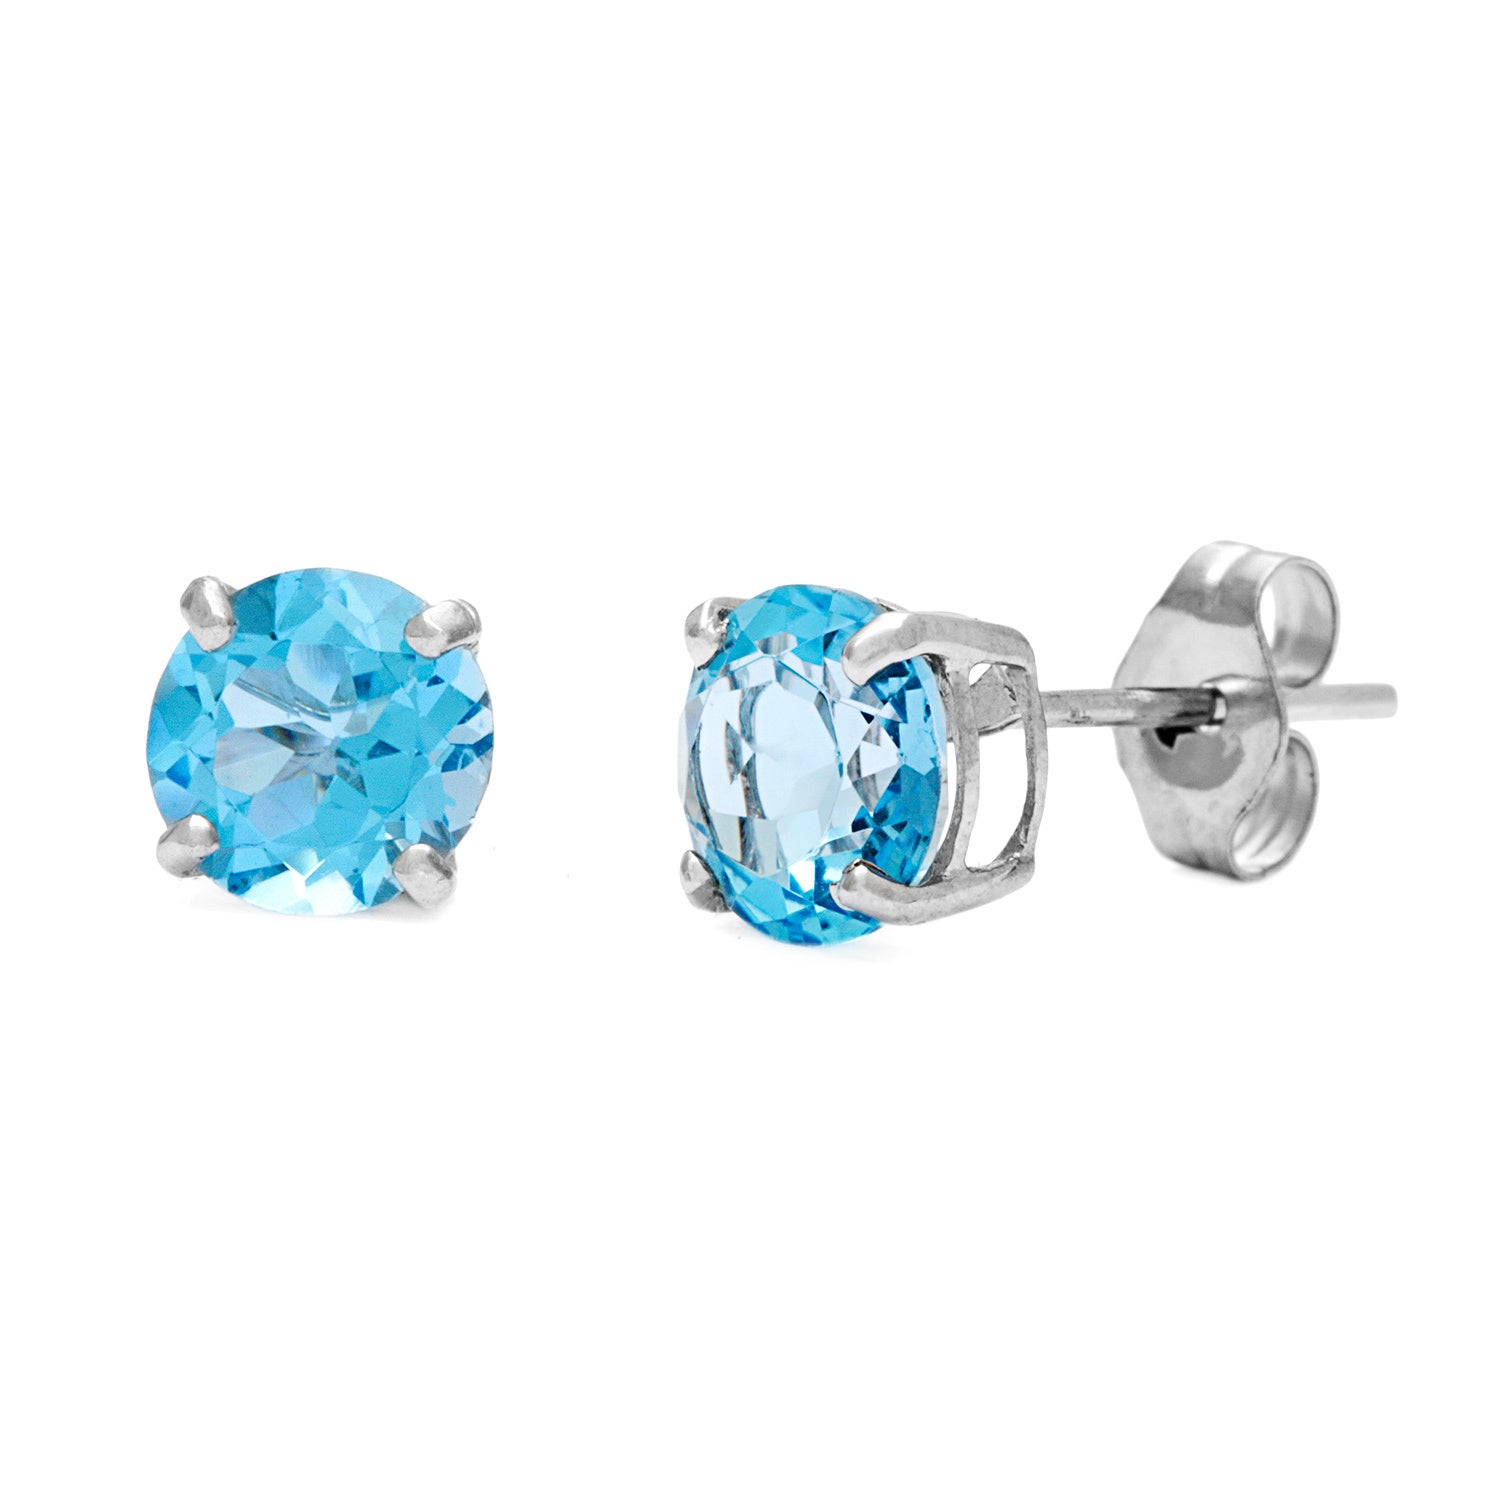 london earrings jaipur products stud marco blue topaz bicego